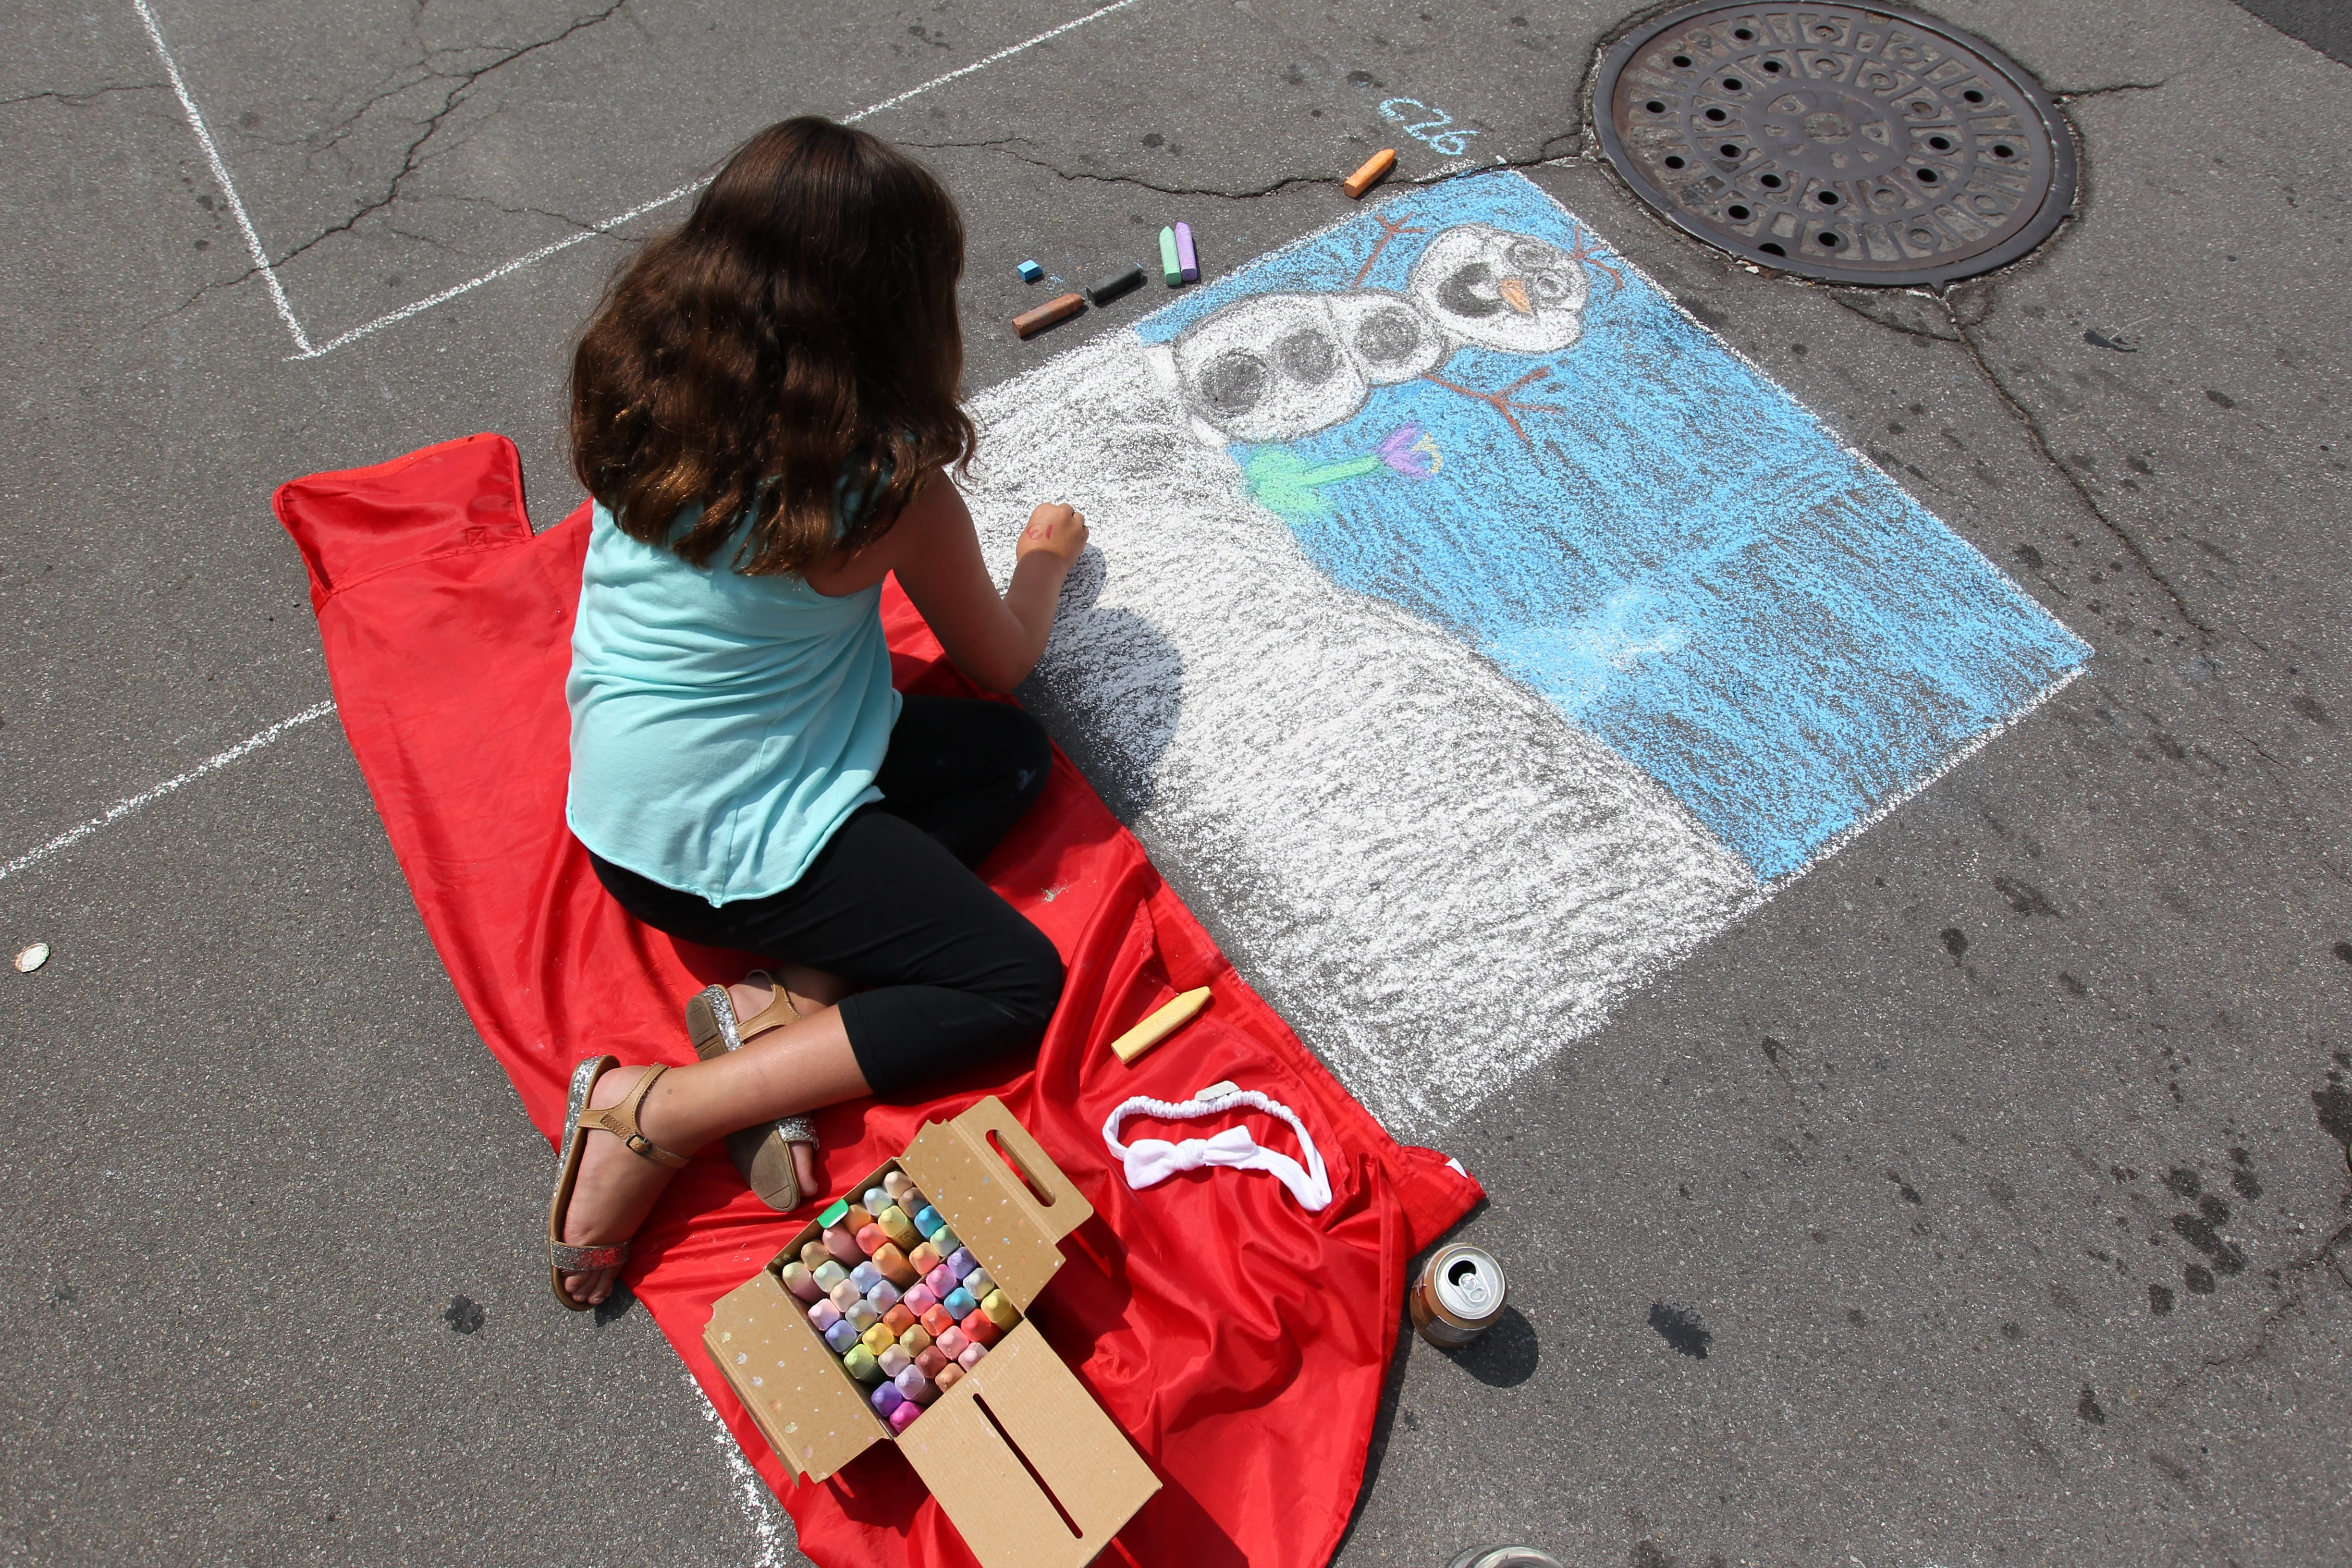 """Haley Roberts of Buffalo works on a drawing inspired by the movie """"Frozen"""" during the third annual Chalkfest Buffalo on Washington Street Saturday."""